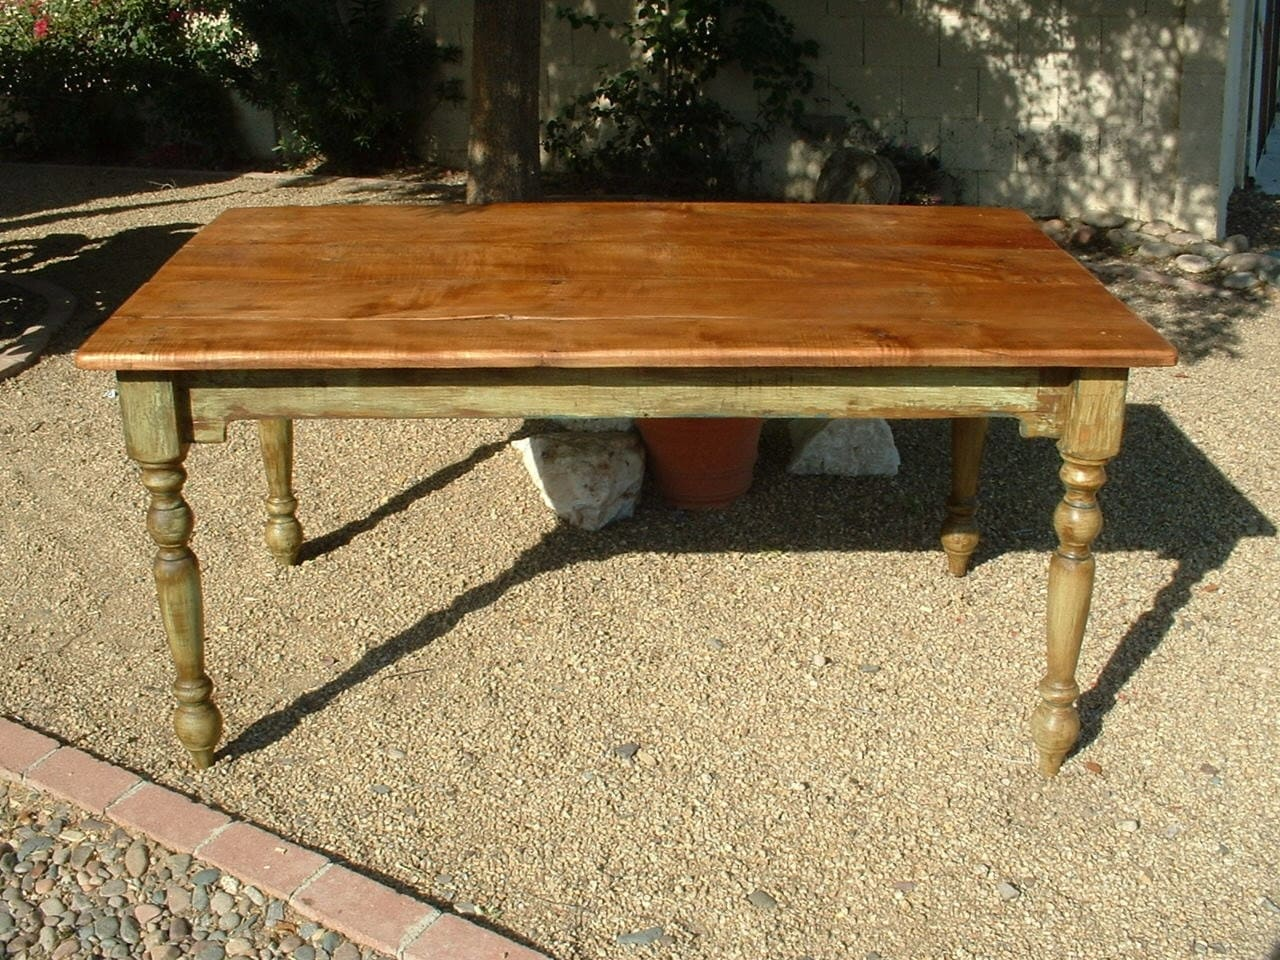 Harvest Plantation Farm Table Handmade With Reclaimed Wood